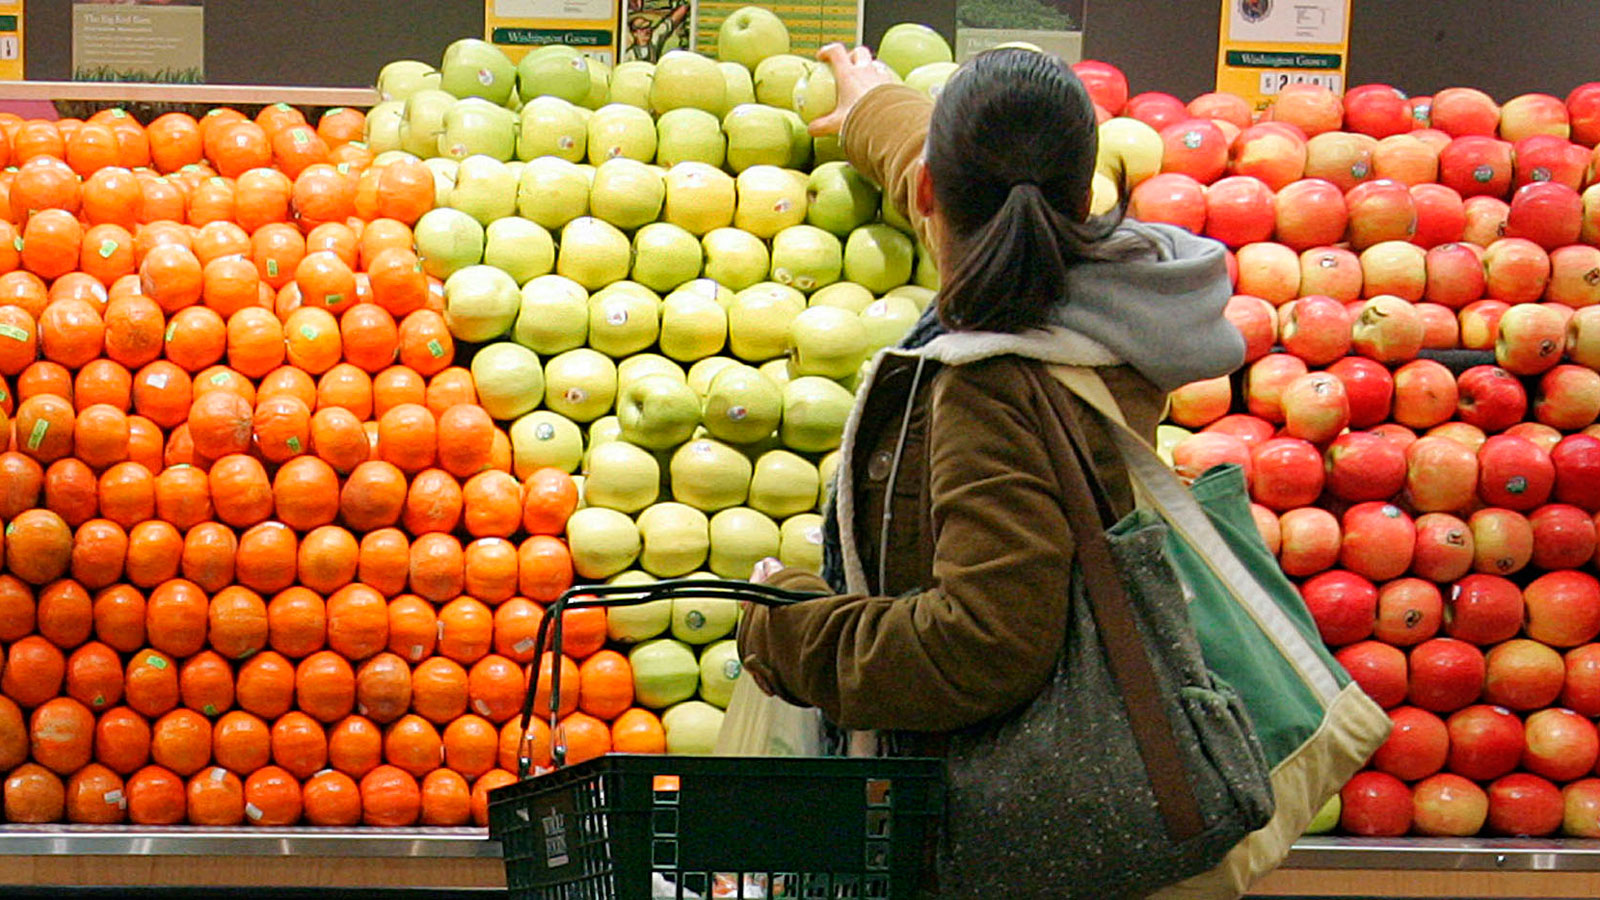 Customers Like This Grocery Store More Than Whole Foods